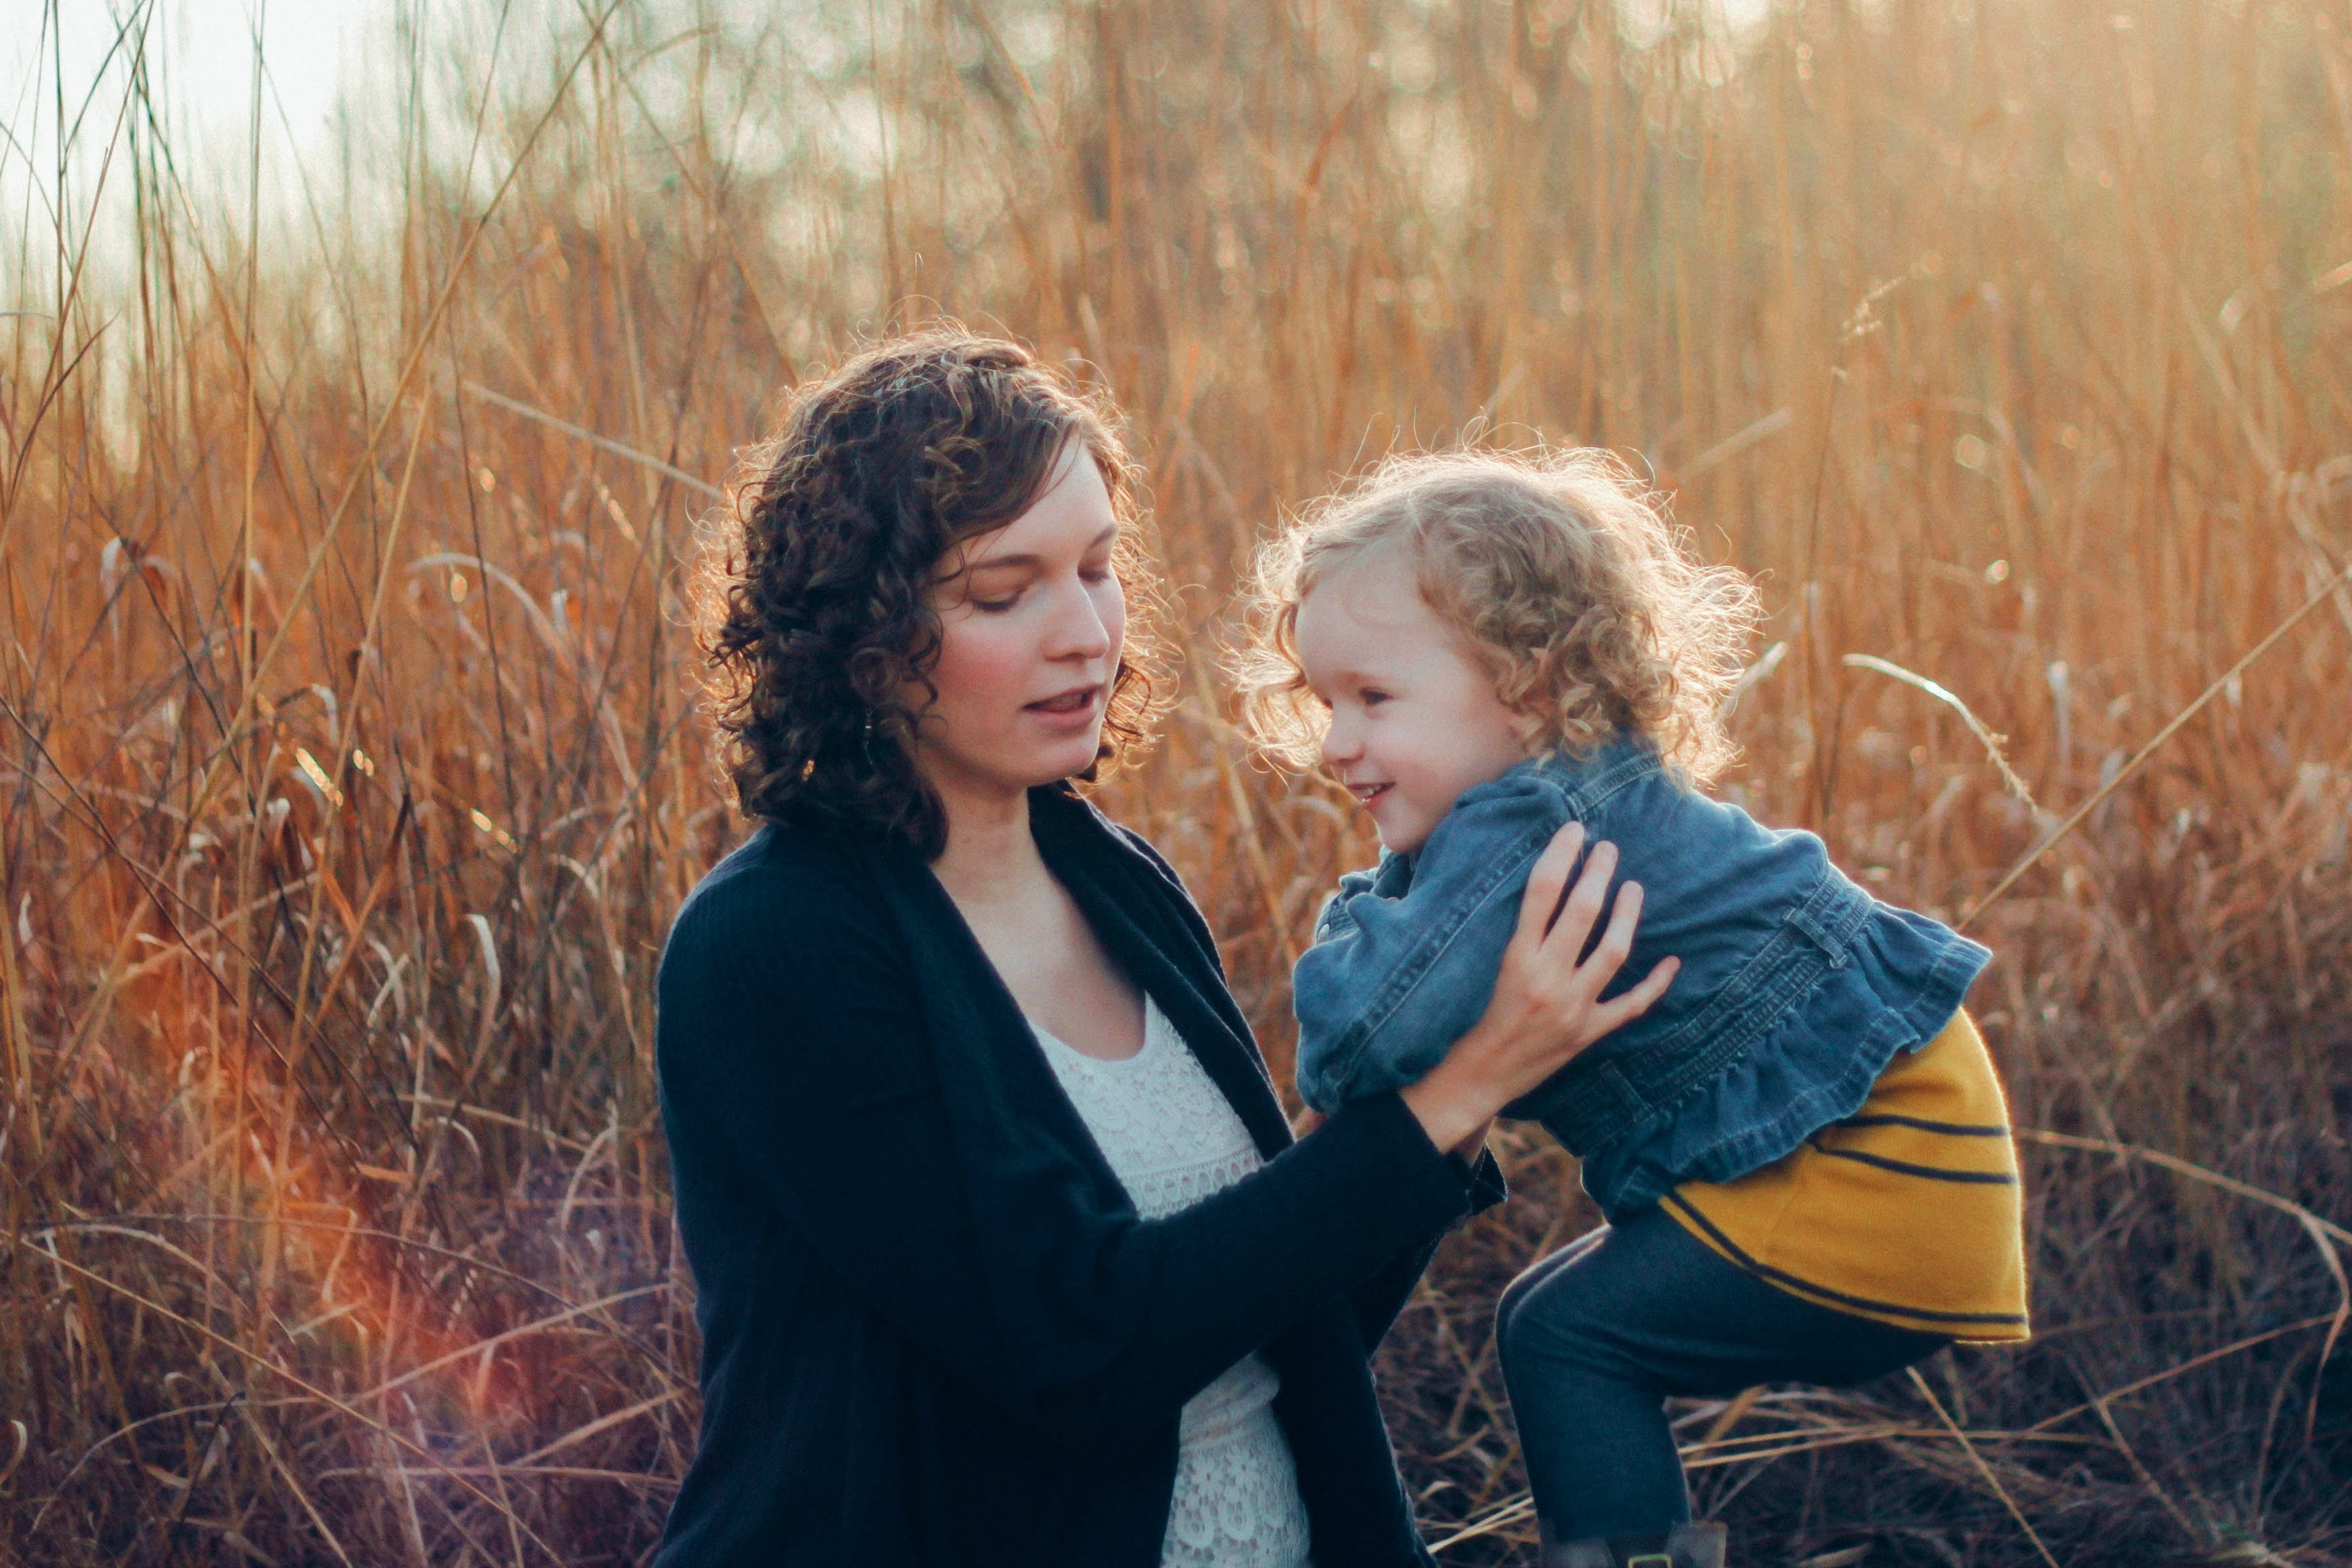 Adult with brown curly hair lifts a smiling toddler with blonde curly hair, in a wheat field